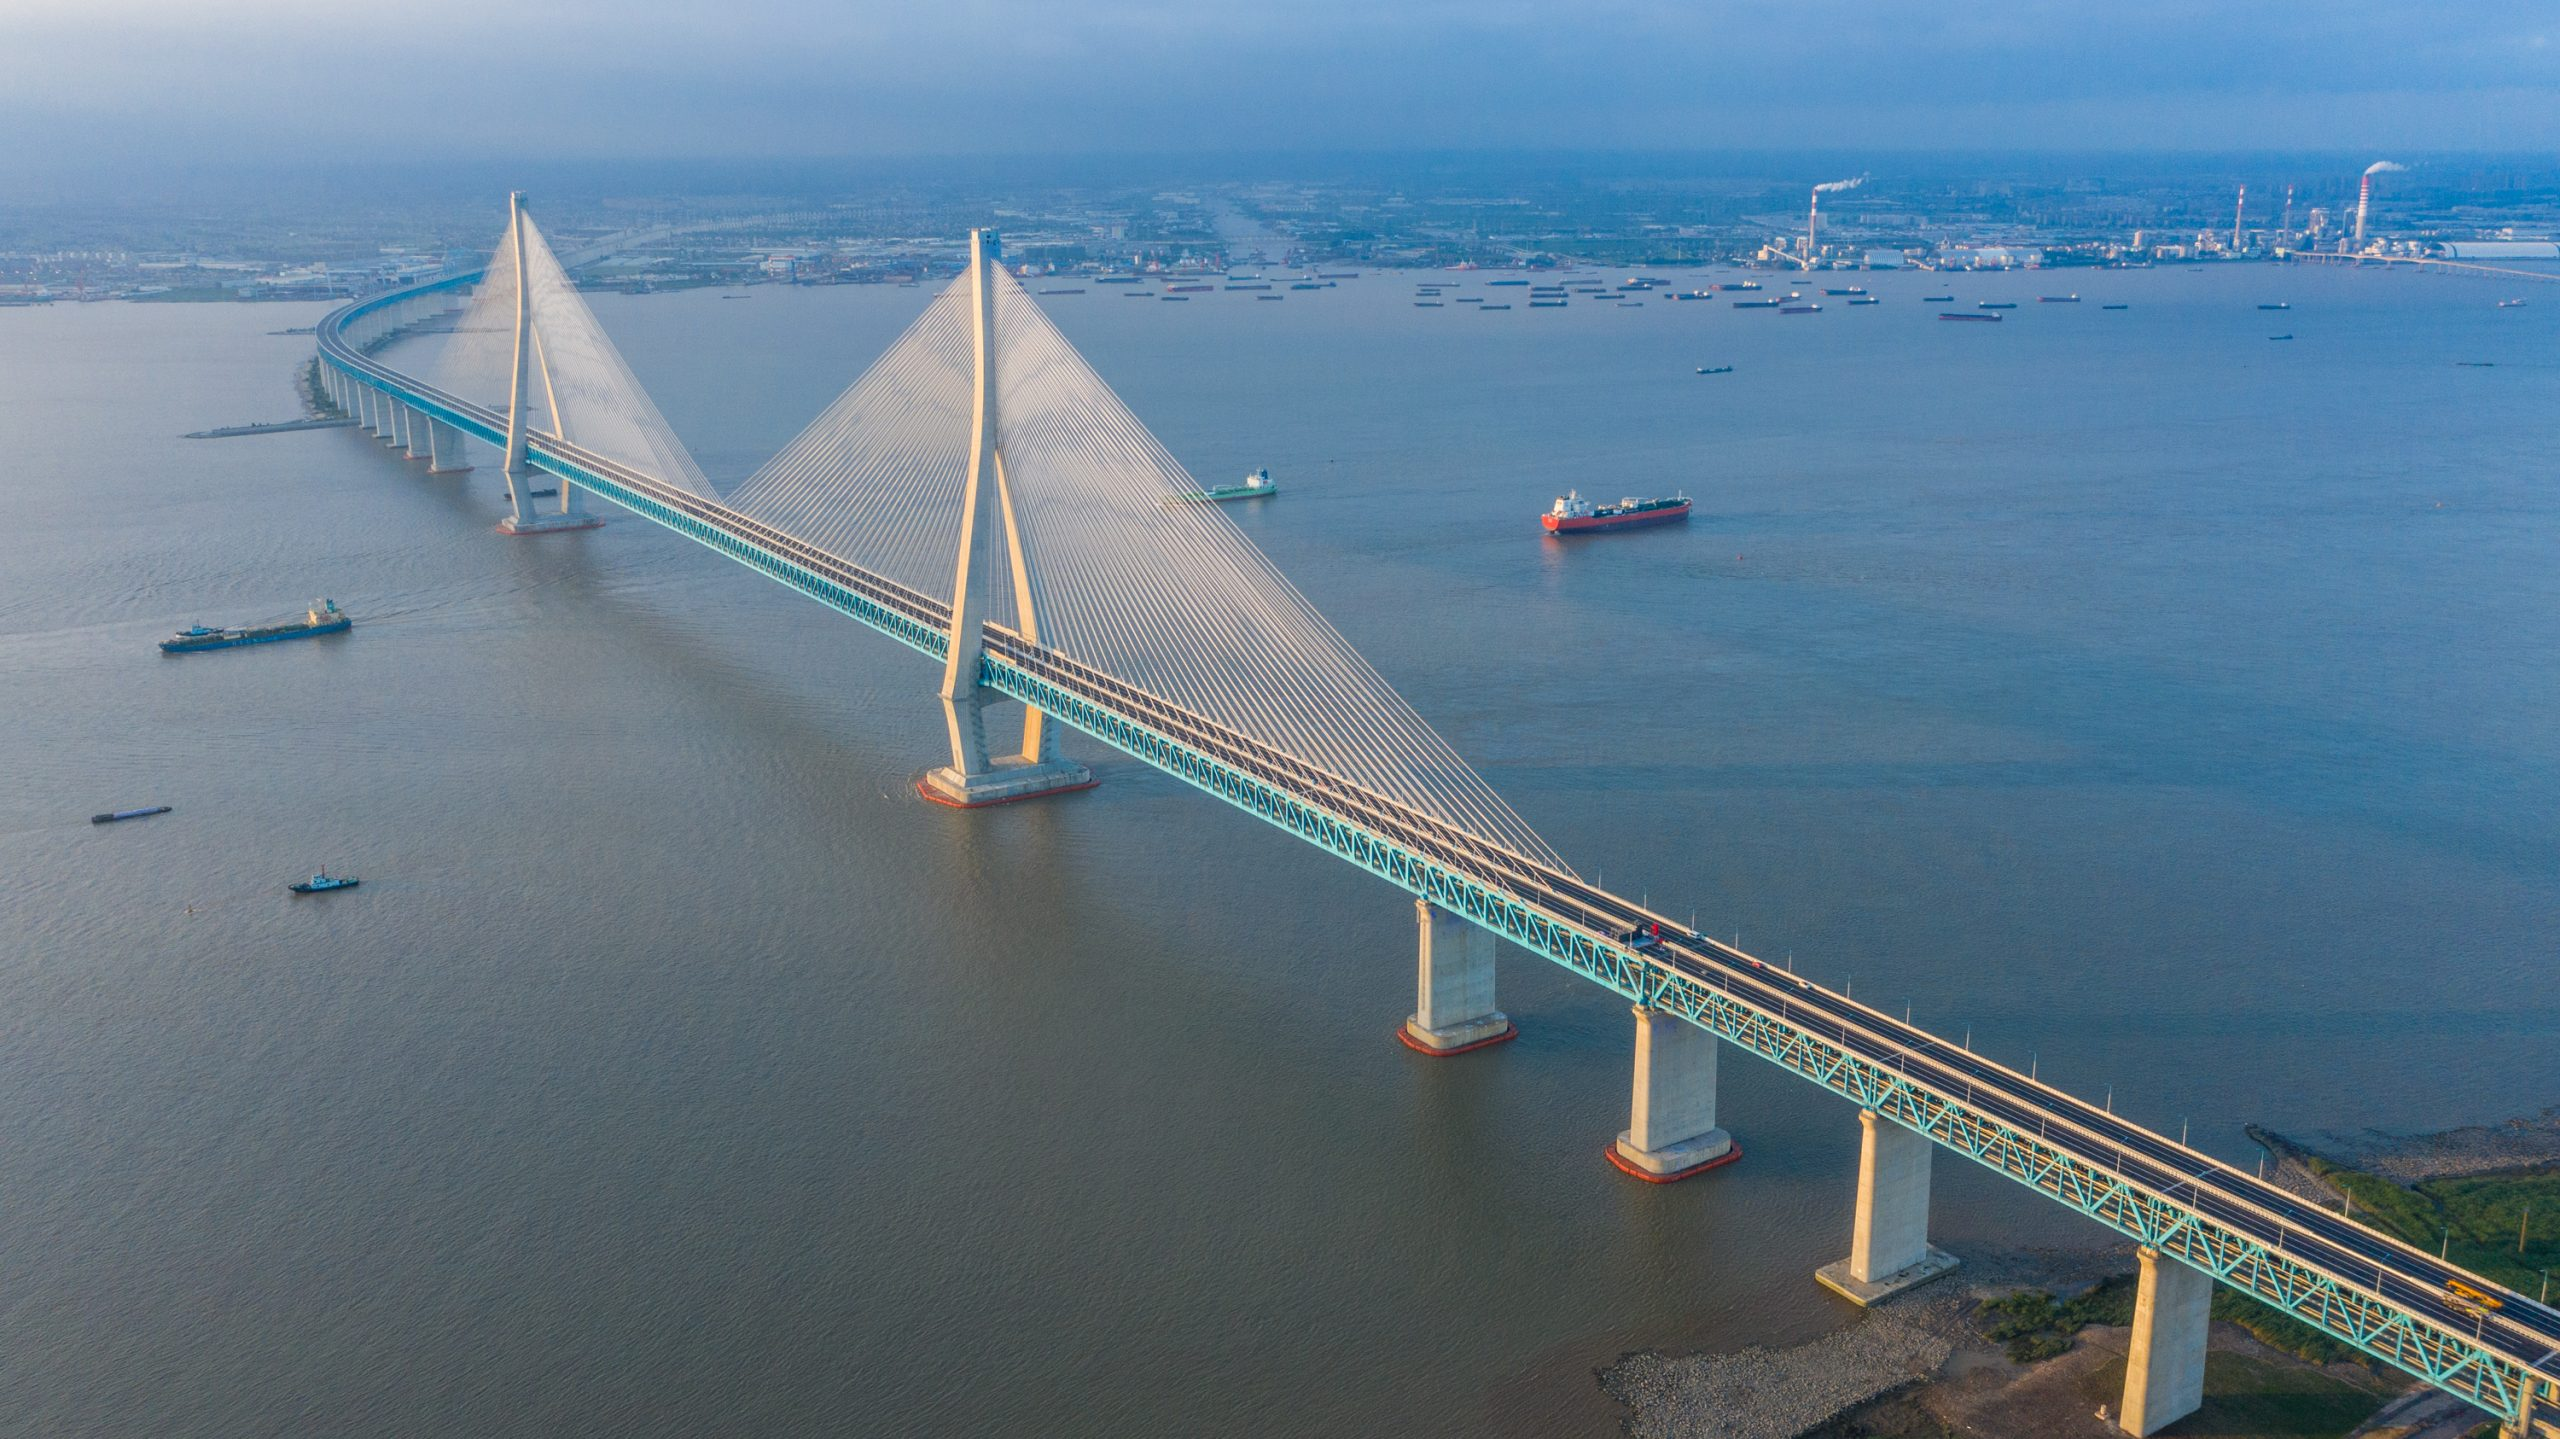 CHINA-JIANGSU-YANGTZE RIVER-BRIDGE (CN)